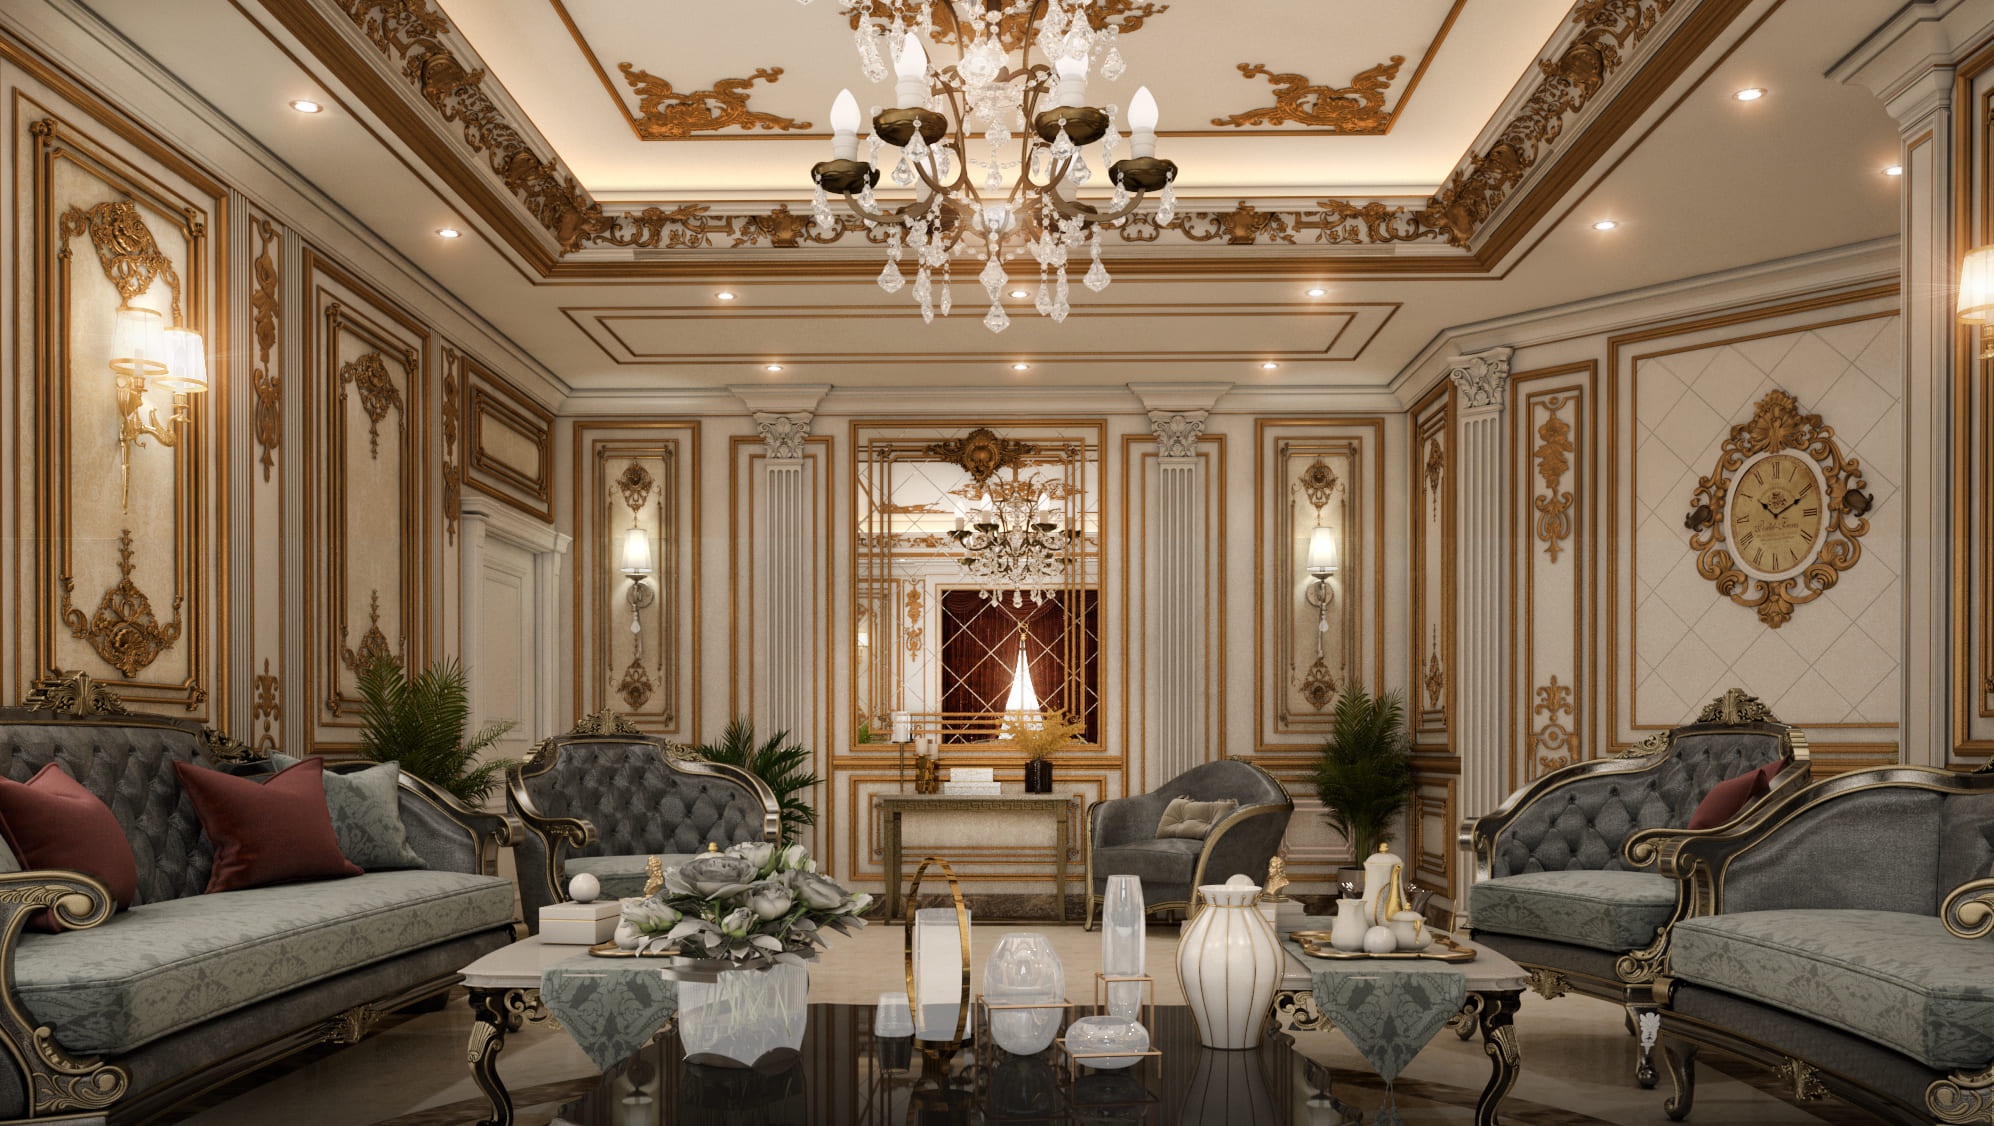 http://qimam.co/wp-content/uploads/2021/03/Private-Palace-3.jpg